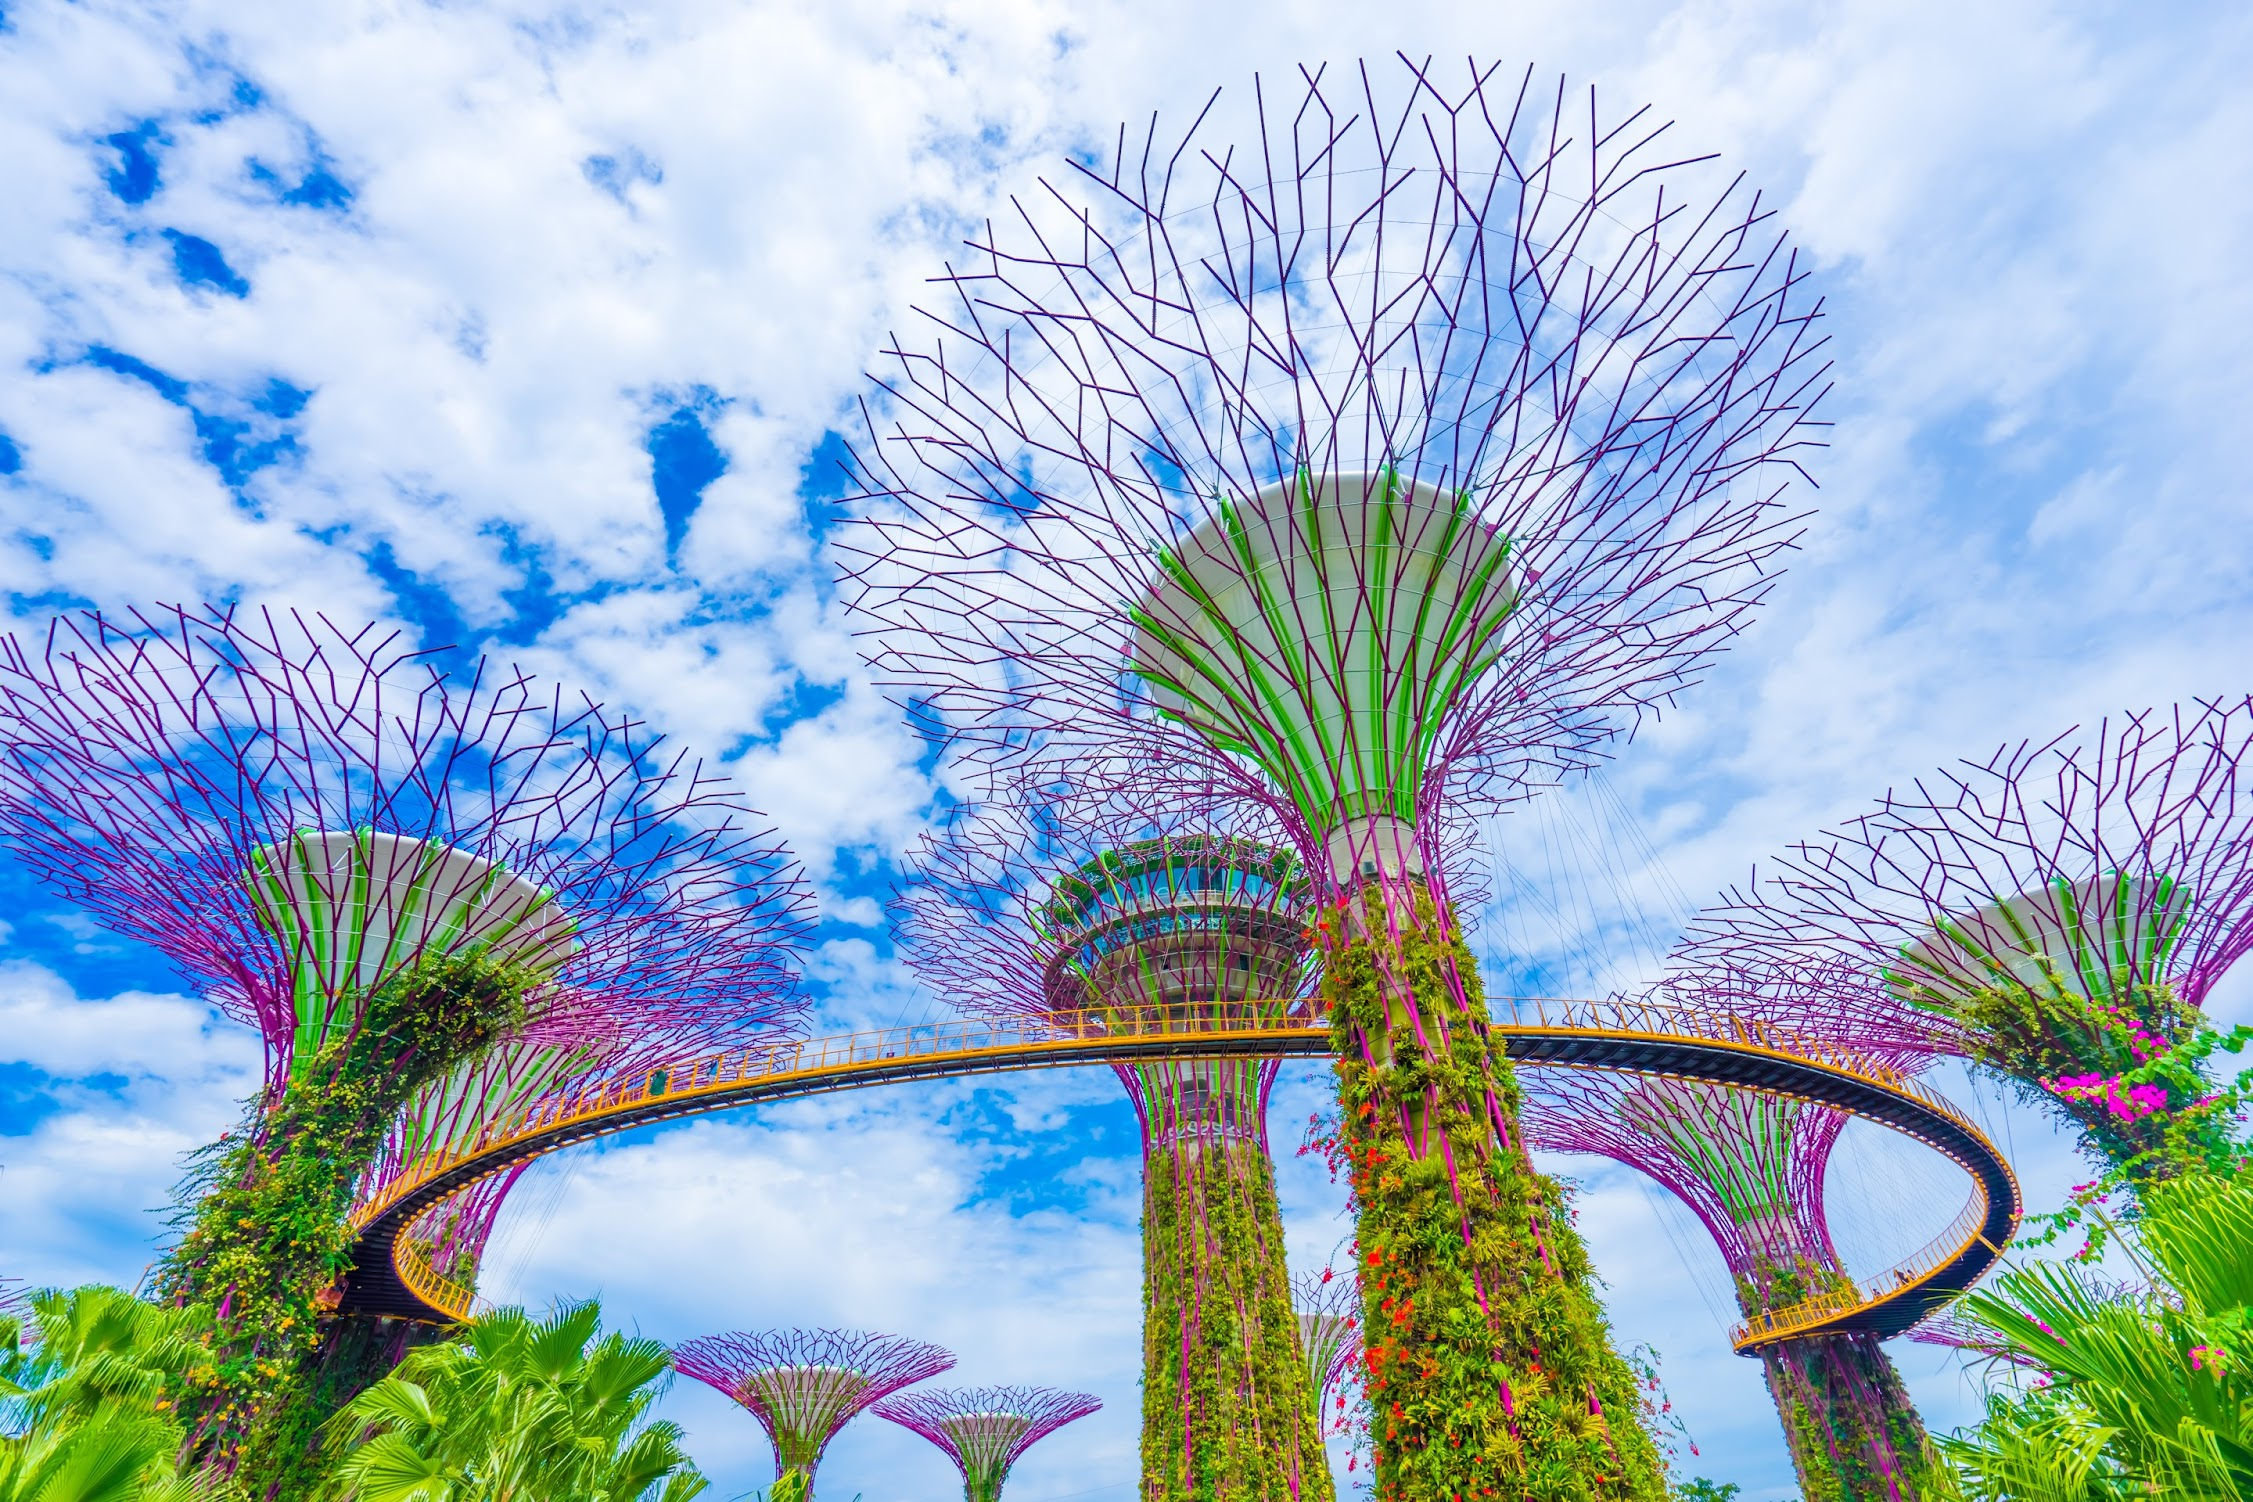 Gardens by the Bay Supertree Grove1